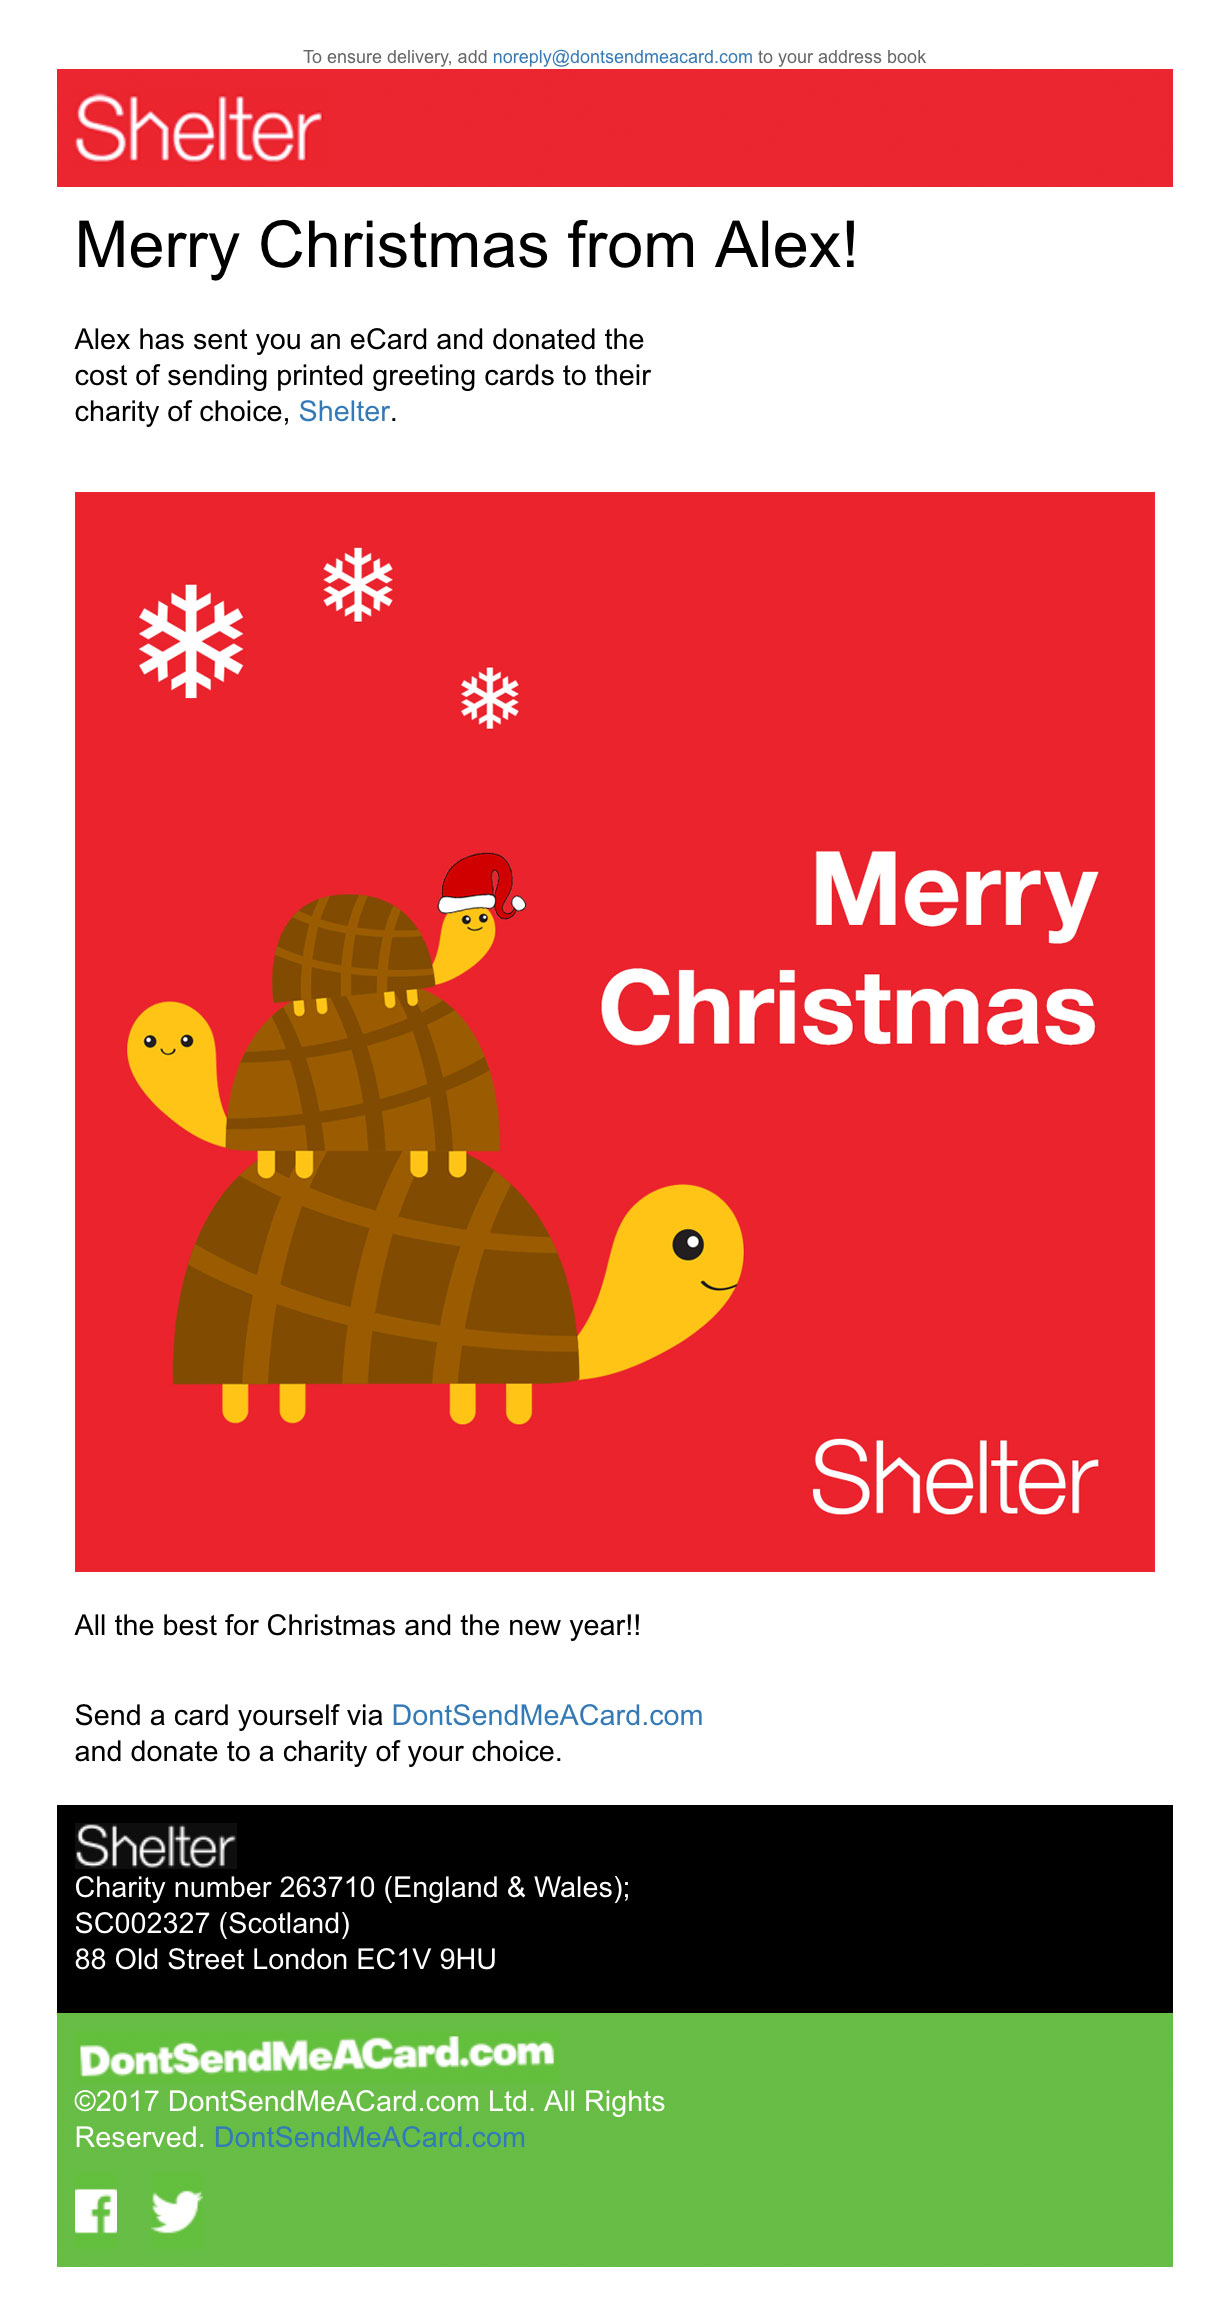 Shelter charity case study